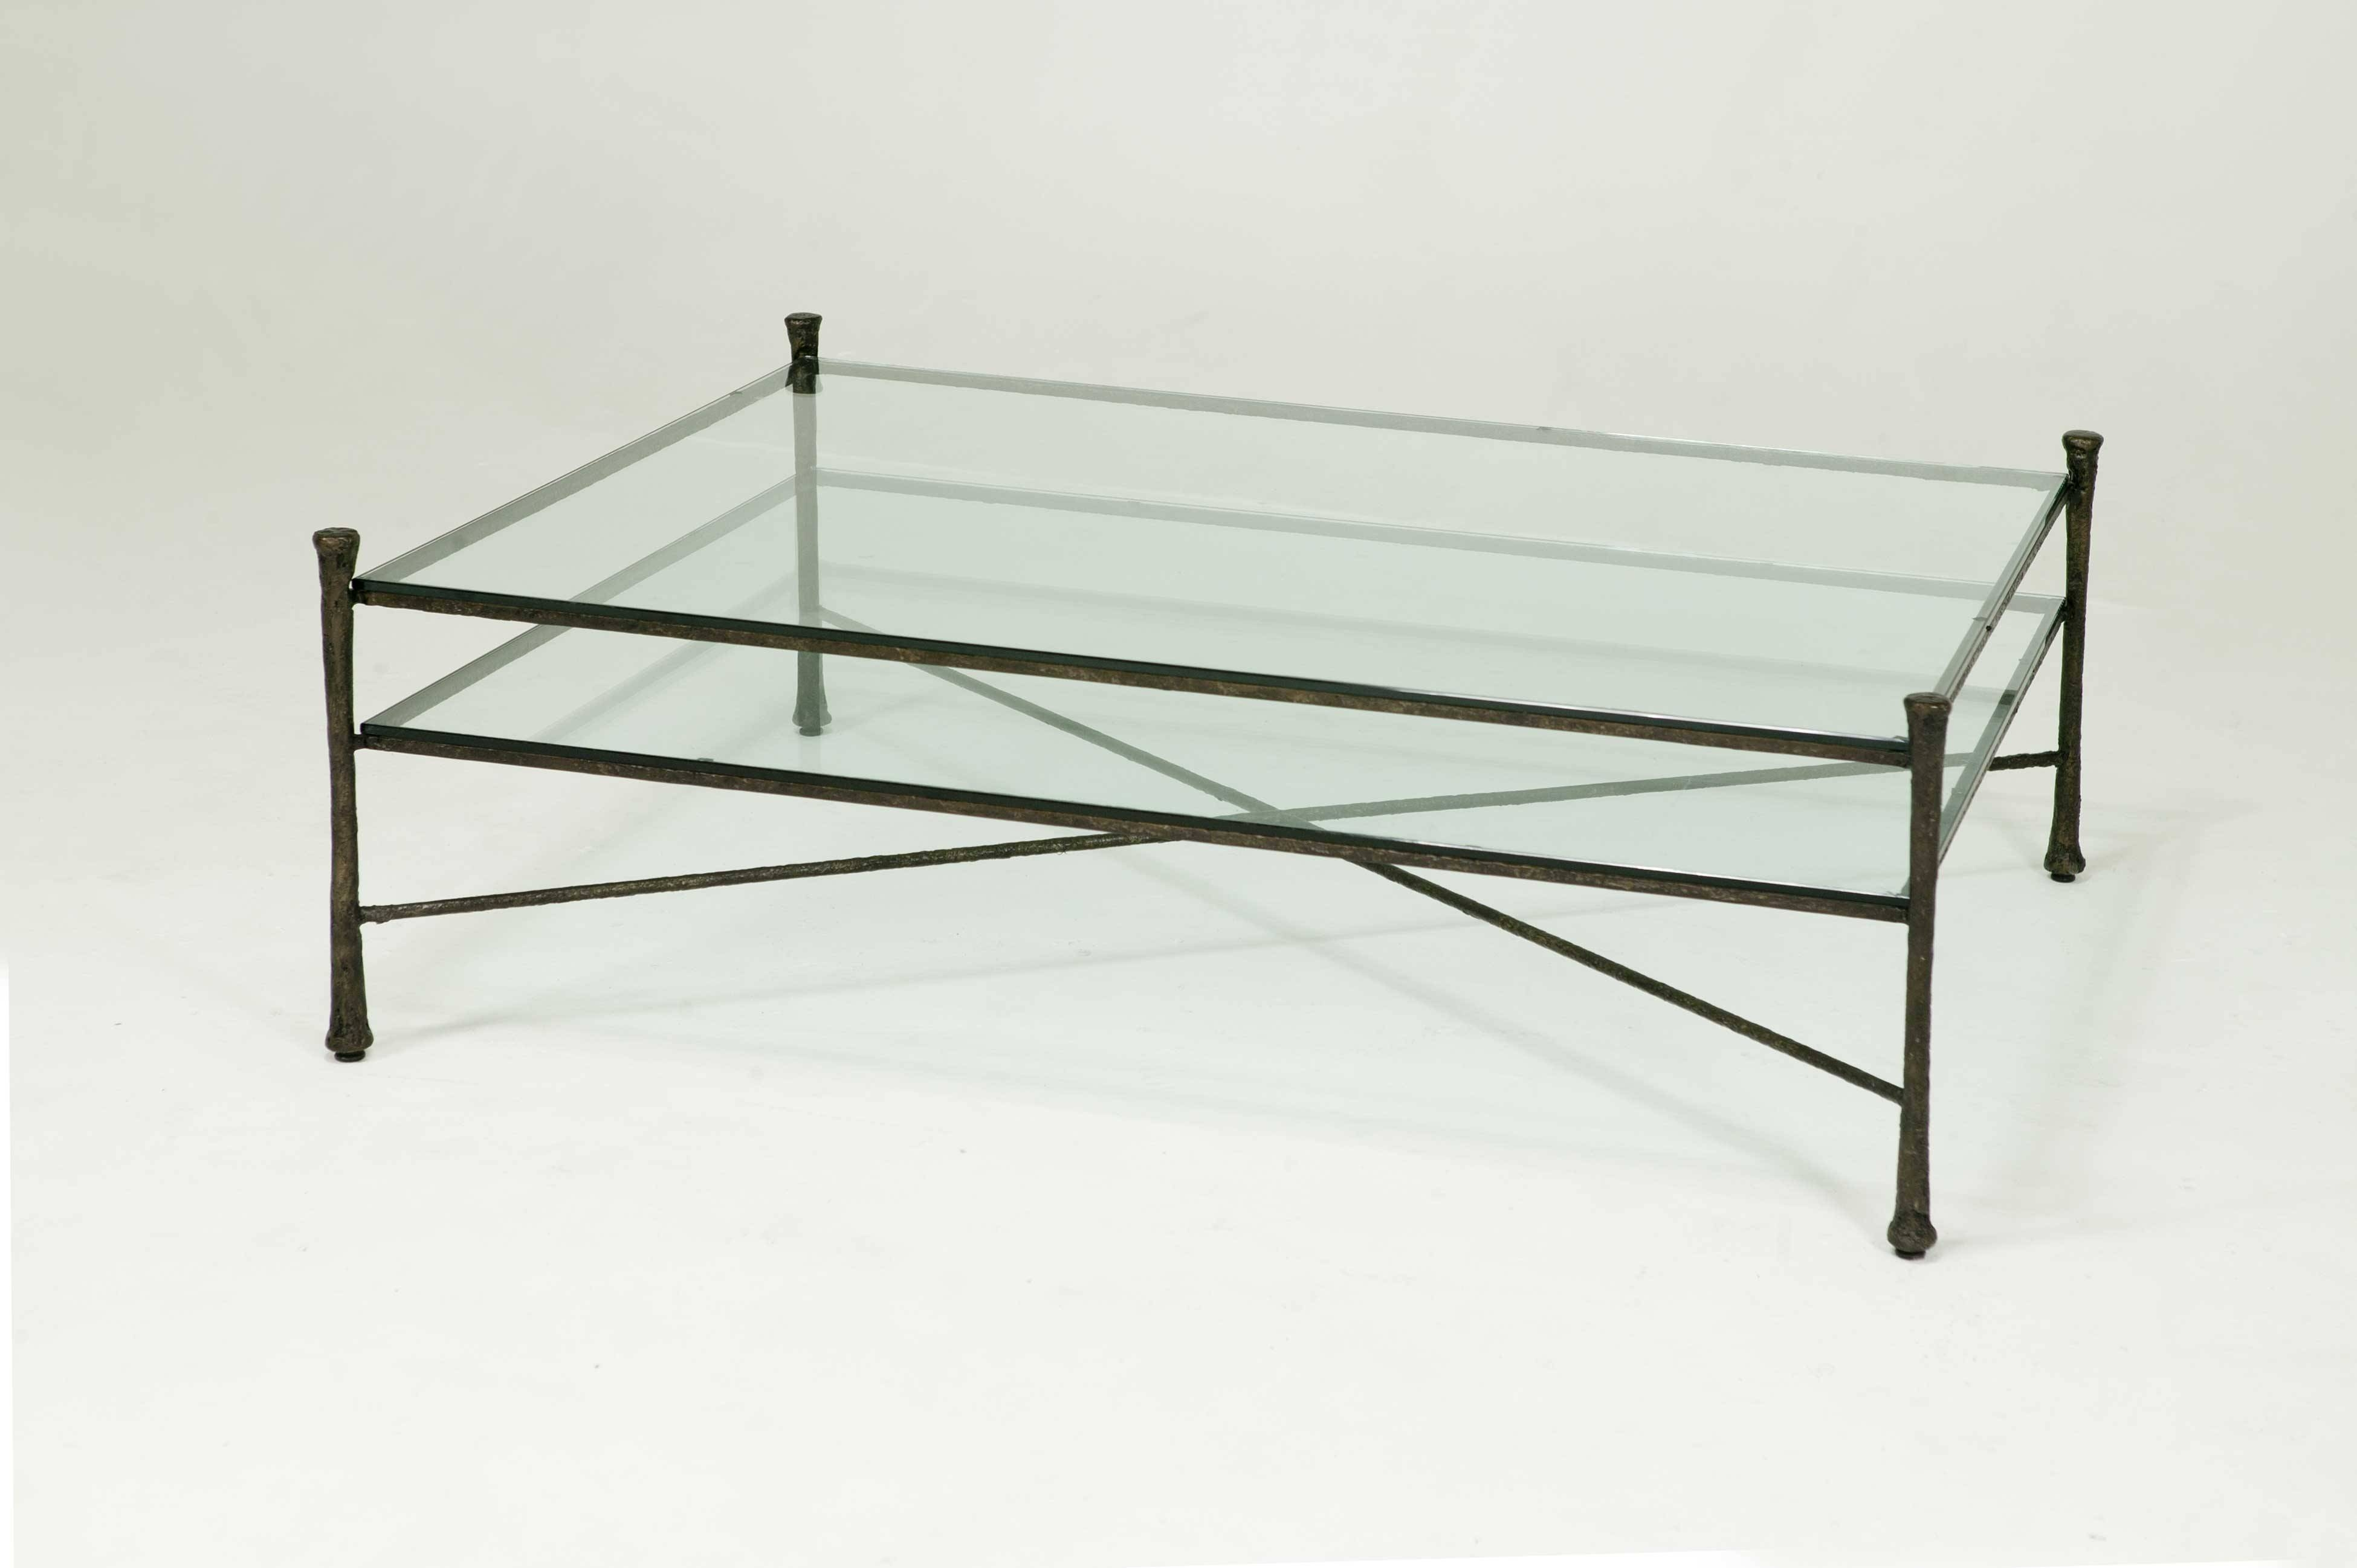 Itemstype | Bausman & Company throughout Glass Coffee Tables With Shelf (Image 20 of 30)